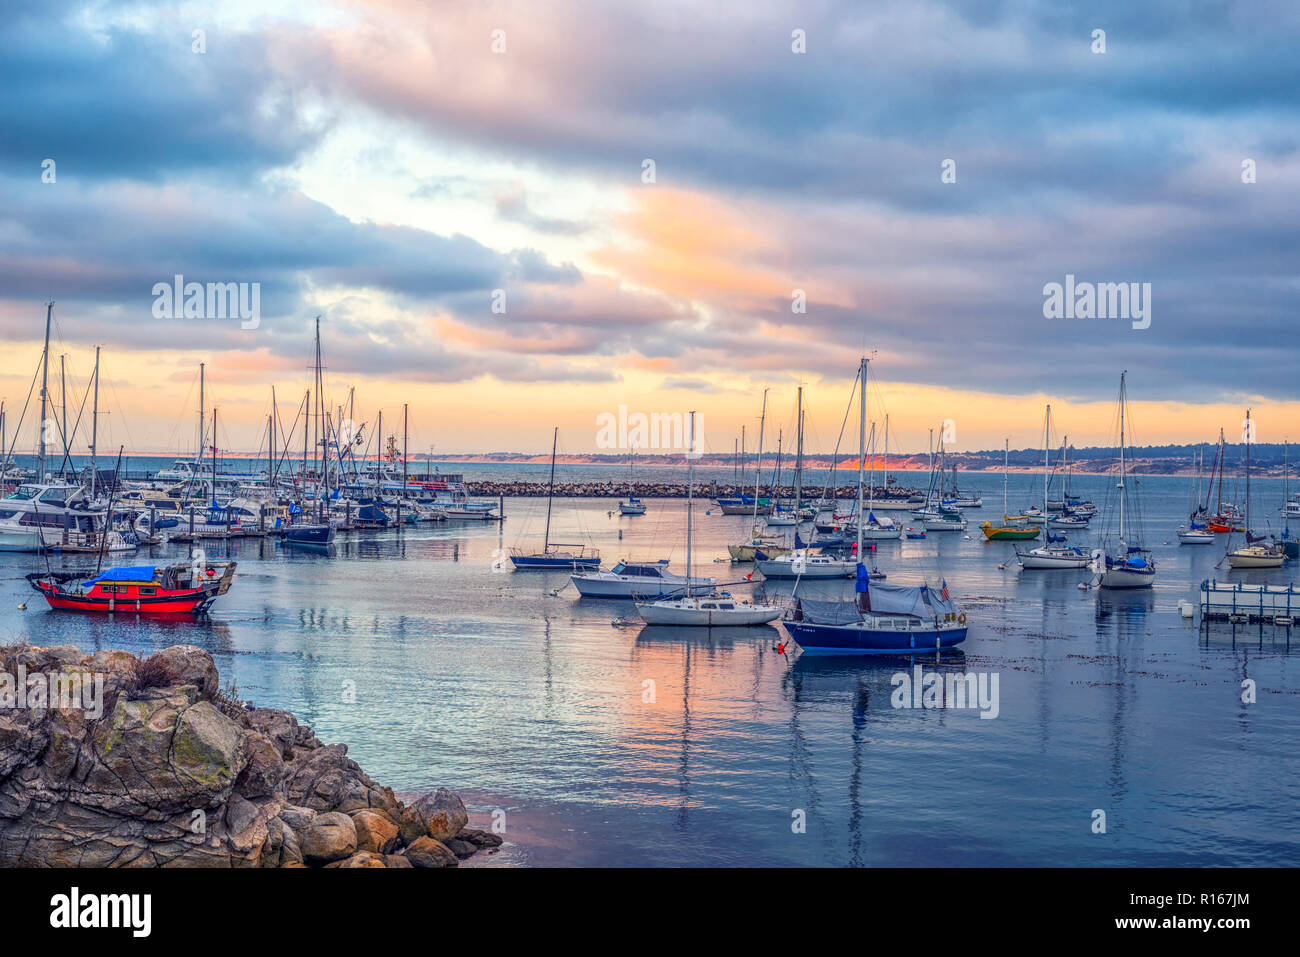 Monterey, California, USA. Boats moored in Monterey Bay photographed at sunset. - Stock Image